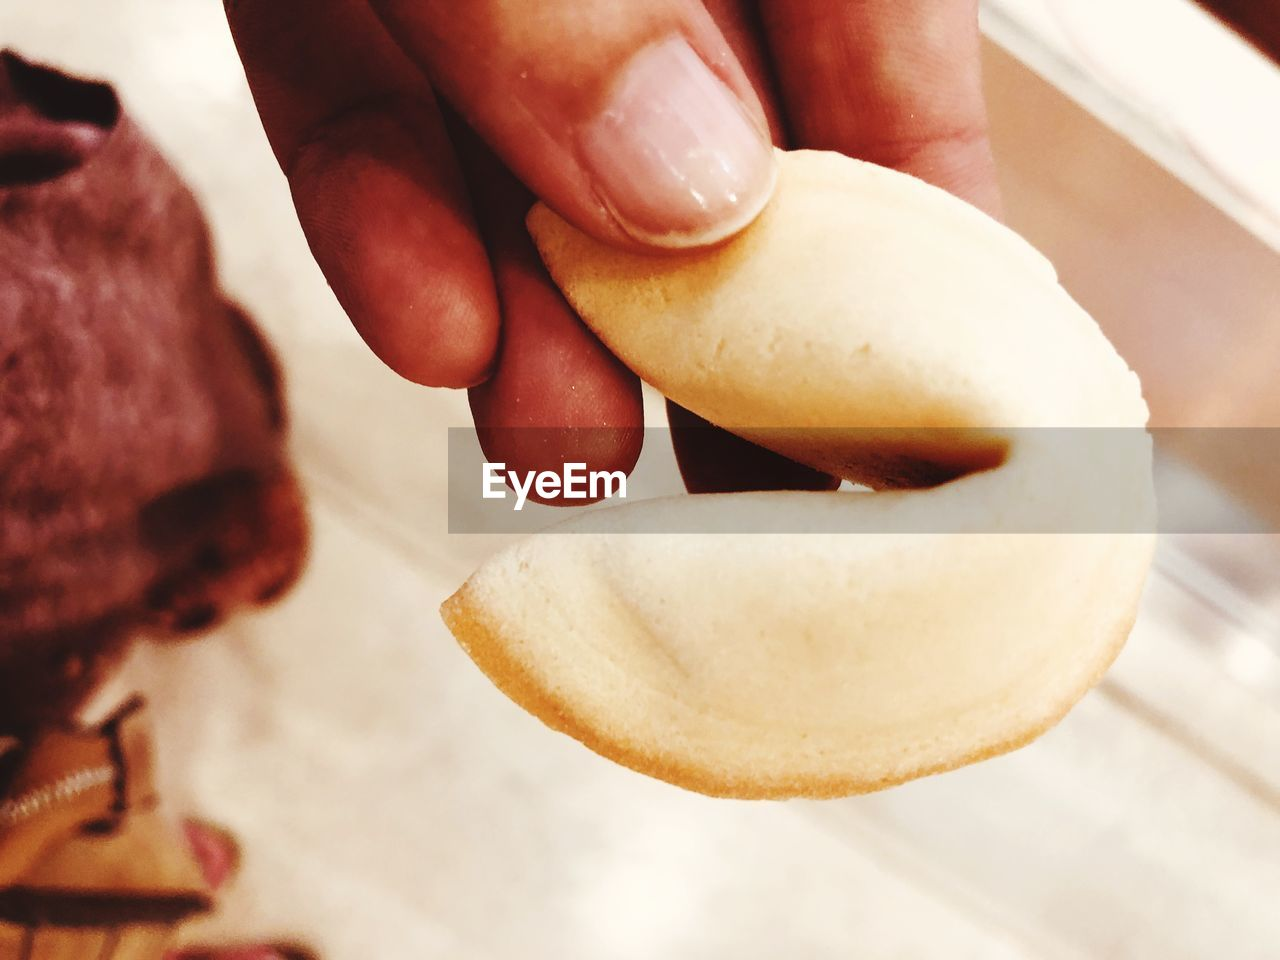 human hand, hand, one person, human body part, food, food and drink, real people, focus on foreground, close-up, unrecognizable person, holding, freshness, body part, indoors, finger, human finger, lifestyles, preparation, snack, hot dog, preparing food, temptation, human limb